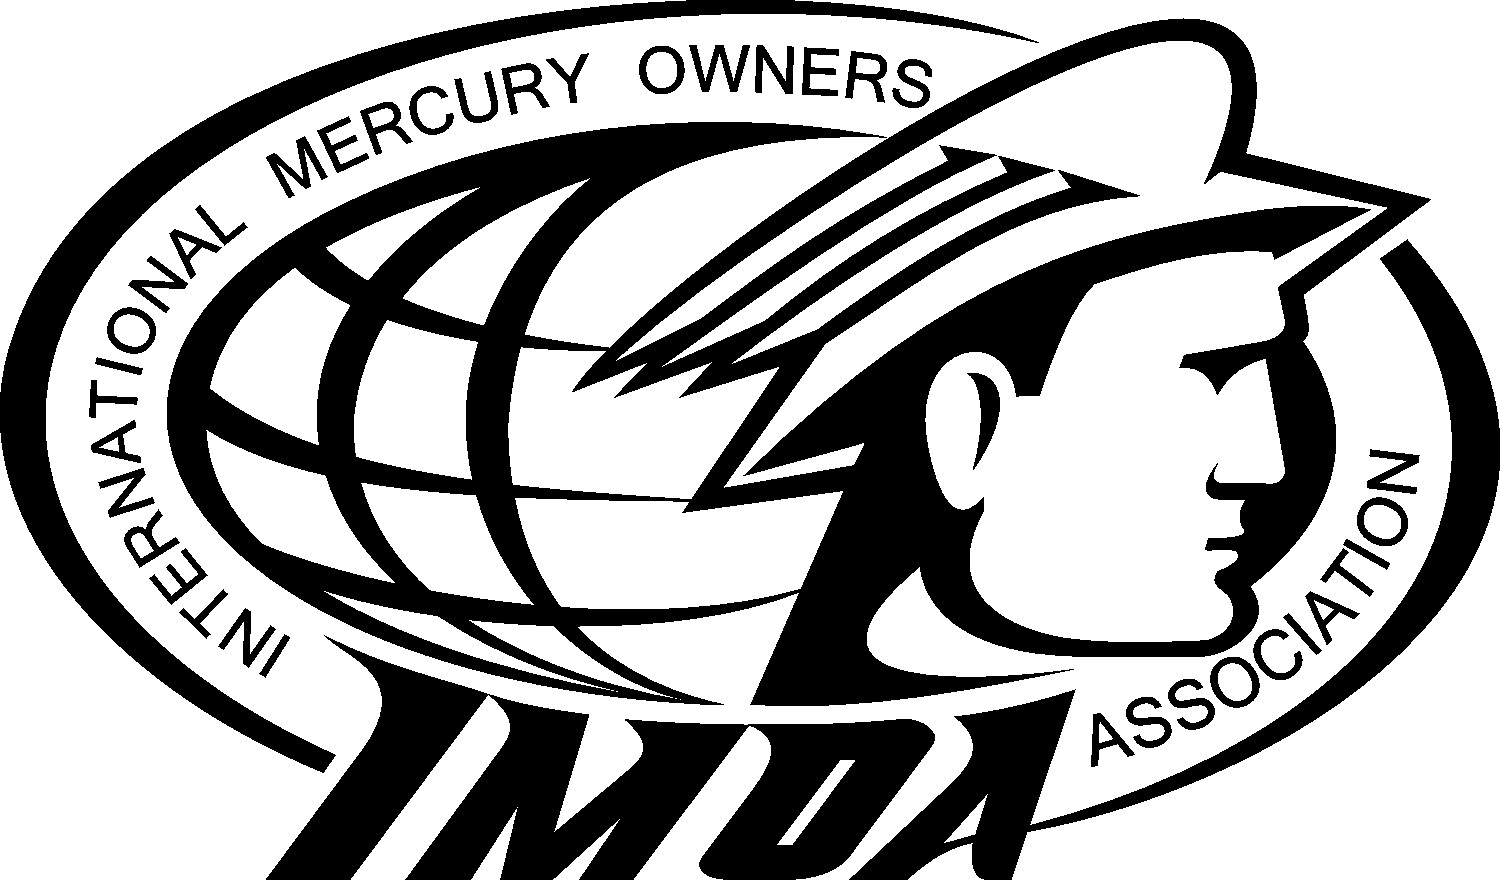 International Mercury Owners Association